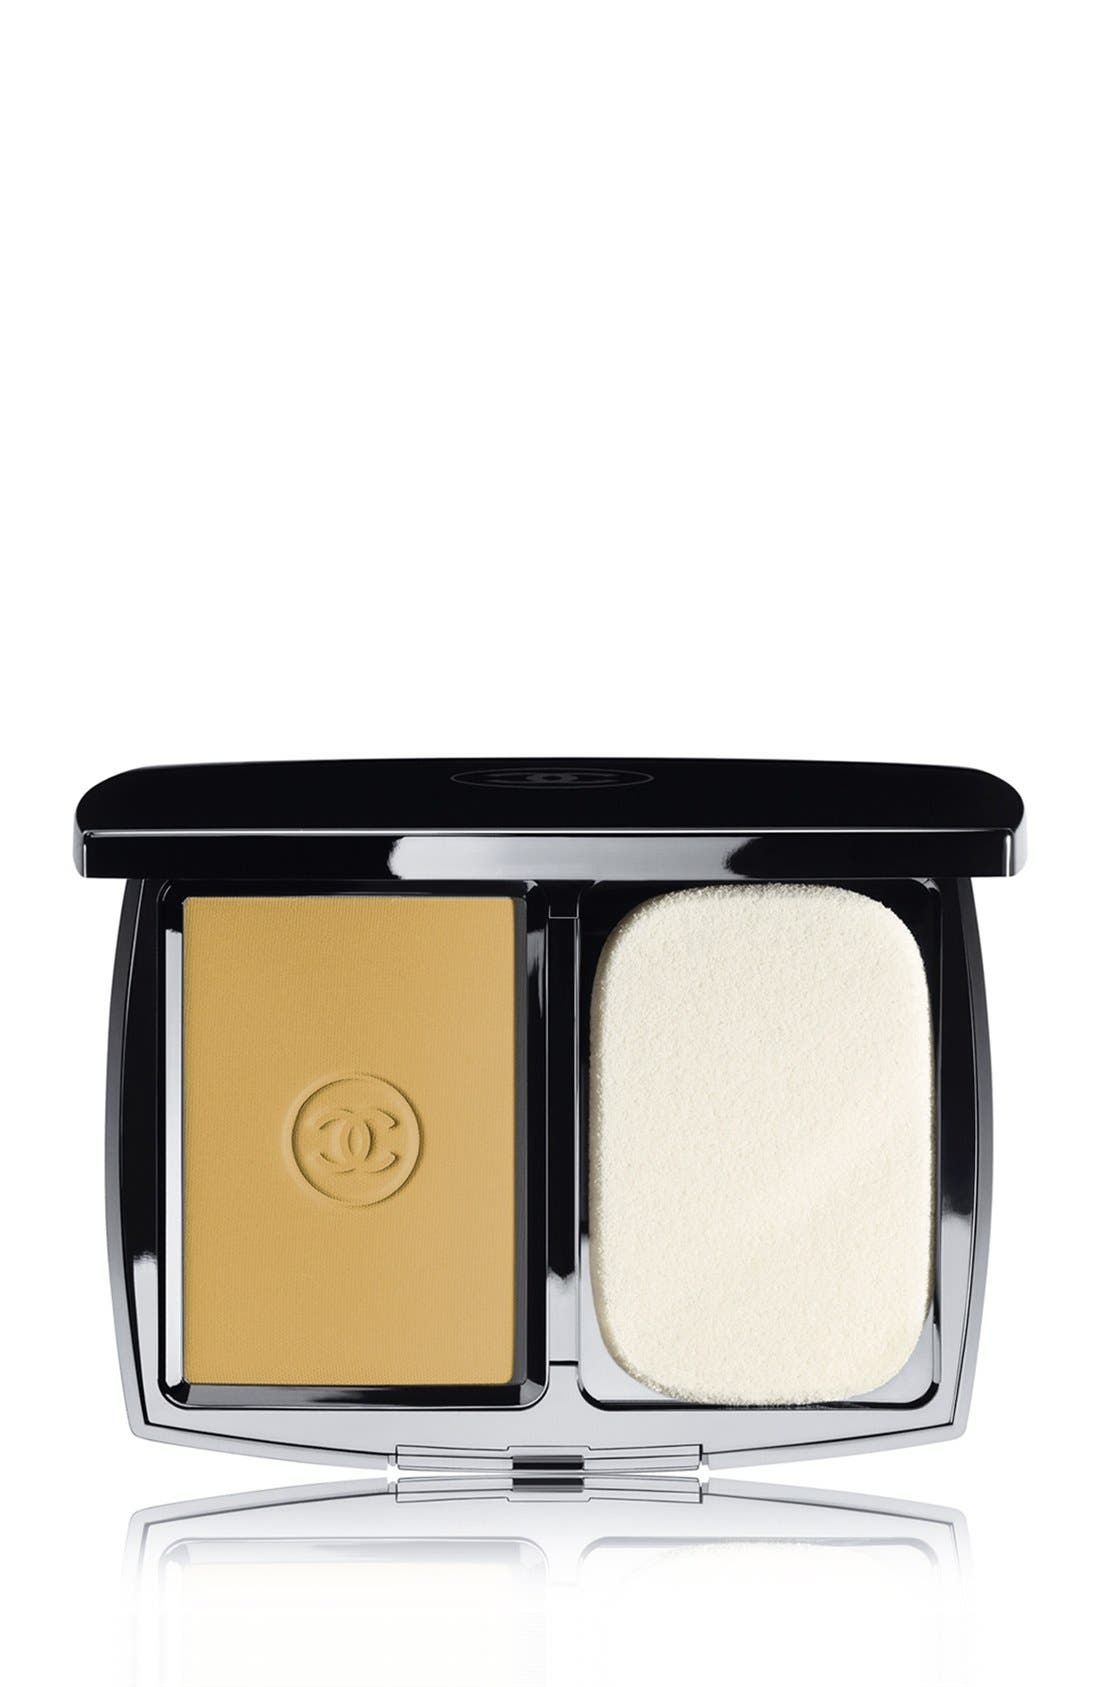 DOUBLE PERFECTION LUMIÈRE<br />Long-Wear Flawless Sunscreen Powder Makeup Broad Spectrum SPF 15,                             Main thumbnail 12, color,